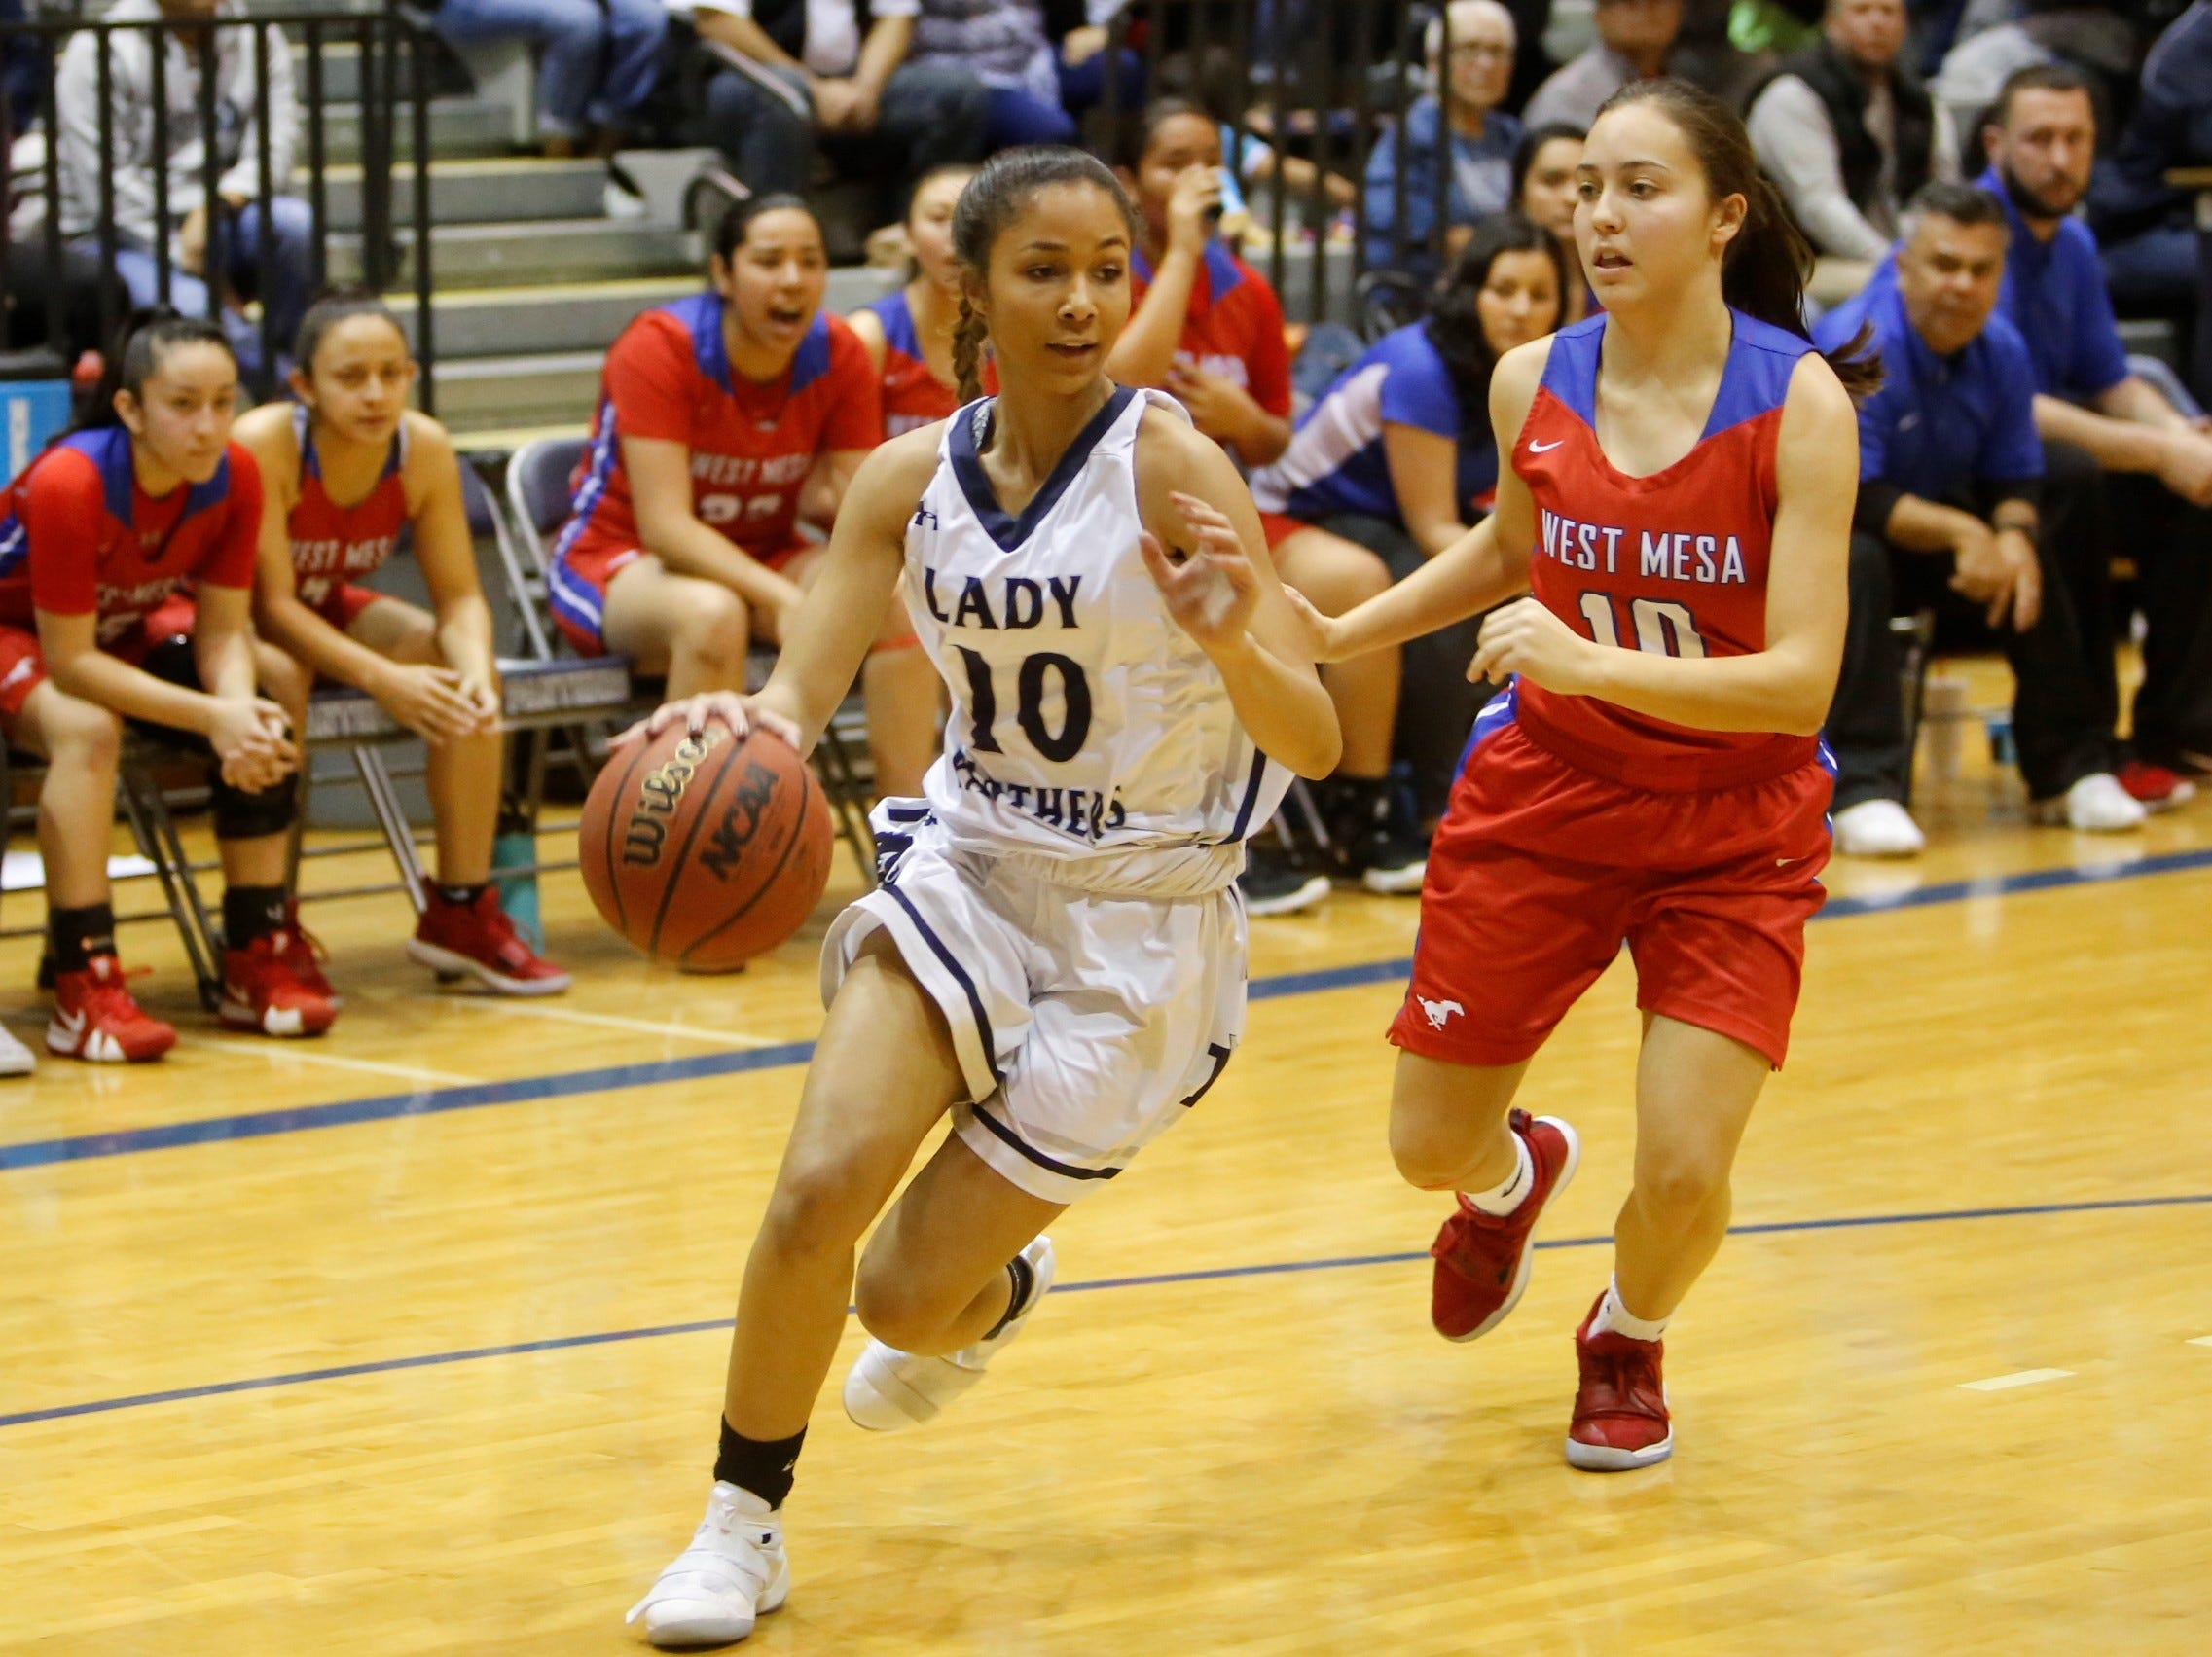 Piedra Vista's Olivia Watson drives toward the basket against West Mesa's Jeniffer Martinez during Saturday's District 2-5A tournament championship game at Jerry A. Conner Fieldhouse in Farmington.